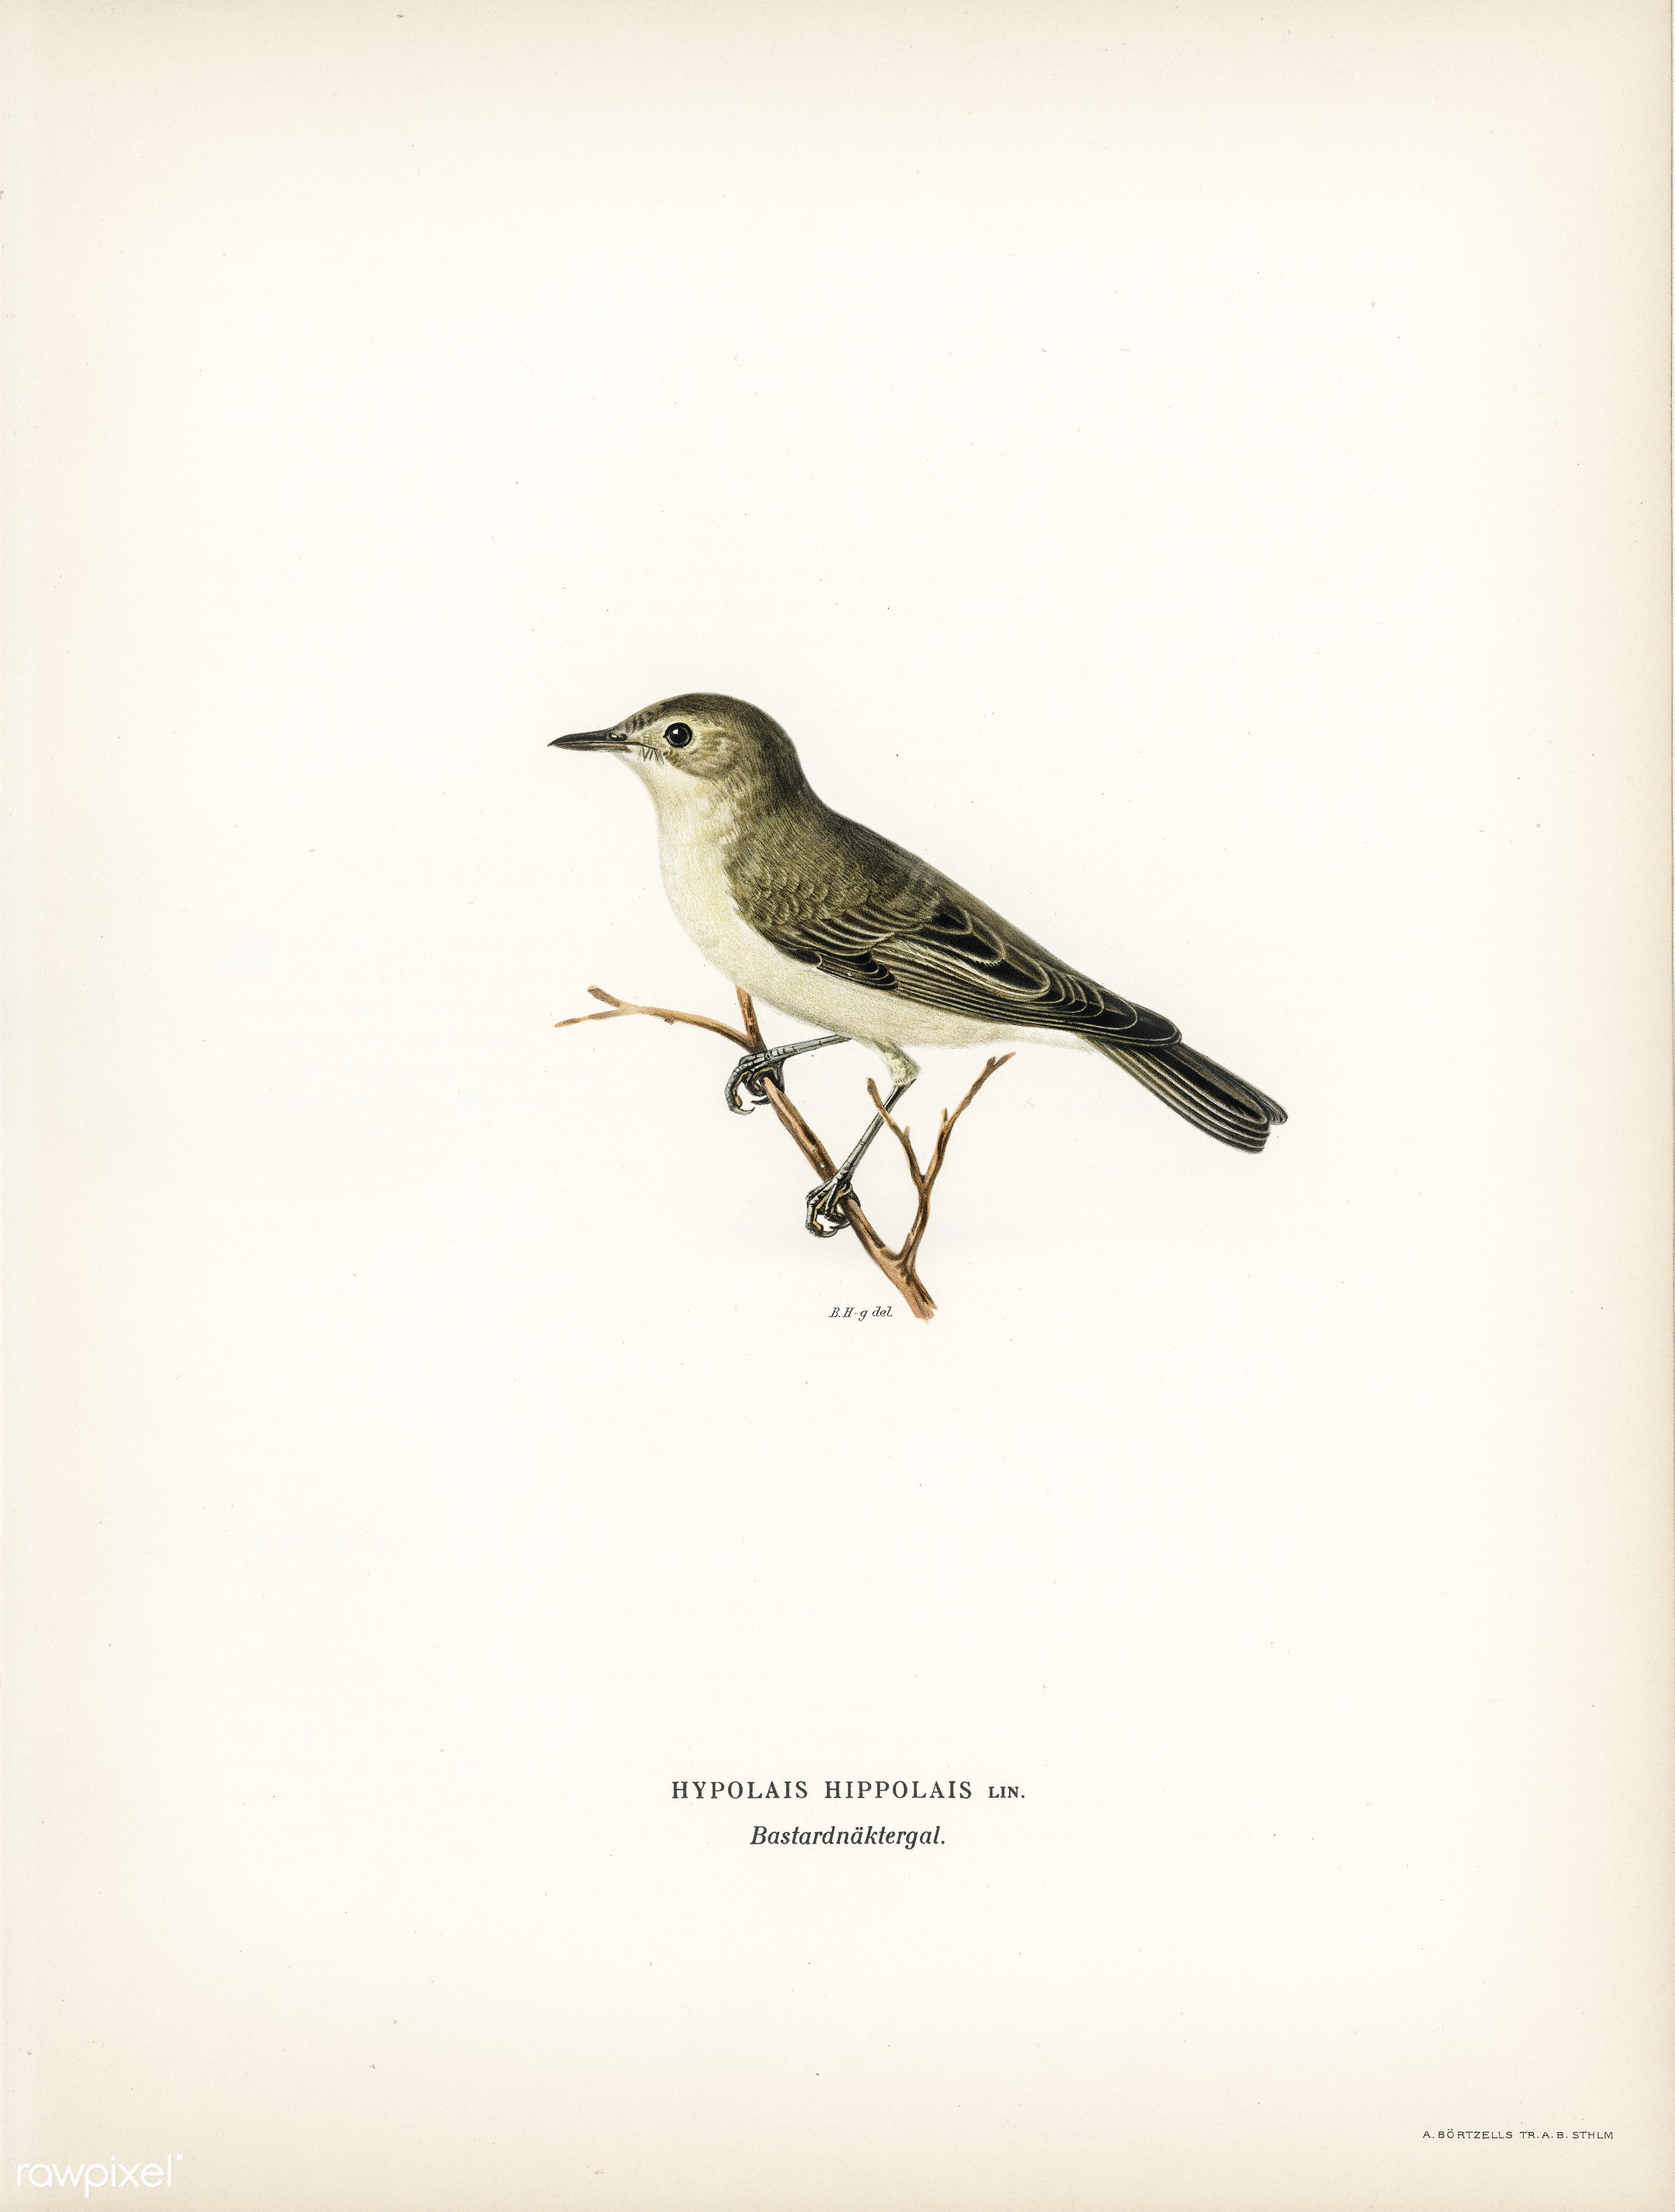 Tree warbler (Hypolais hipolais) illustrated by the von Wright brothers. Digitally enhanced from our own 1929 folio version...